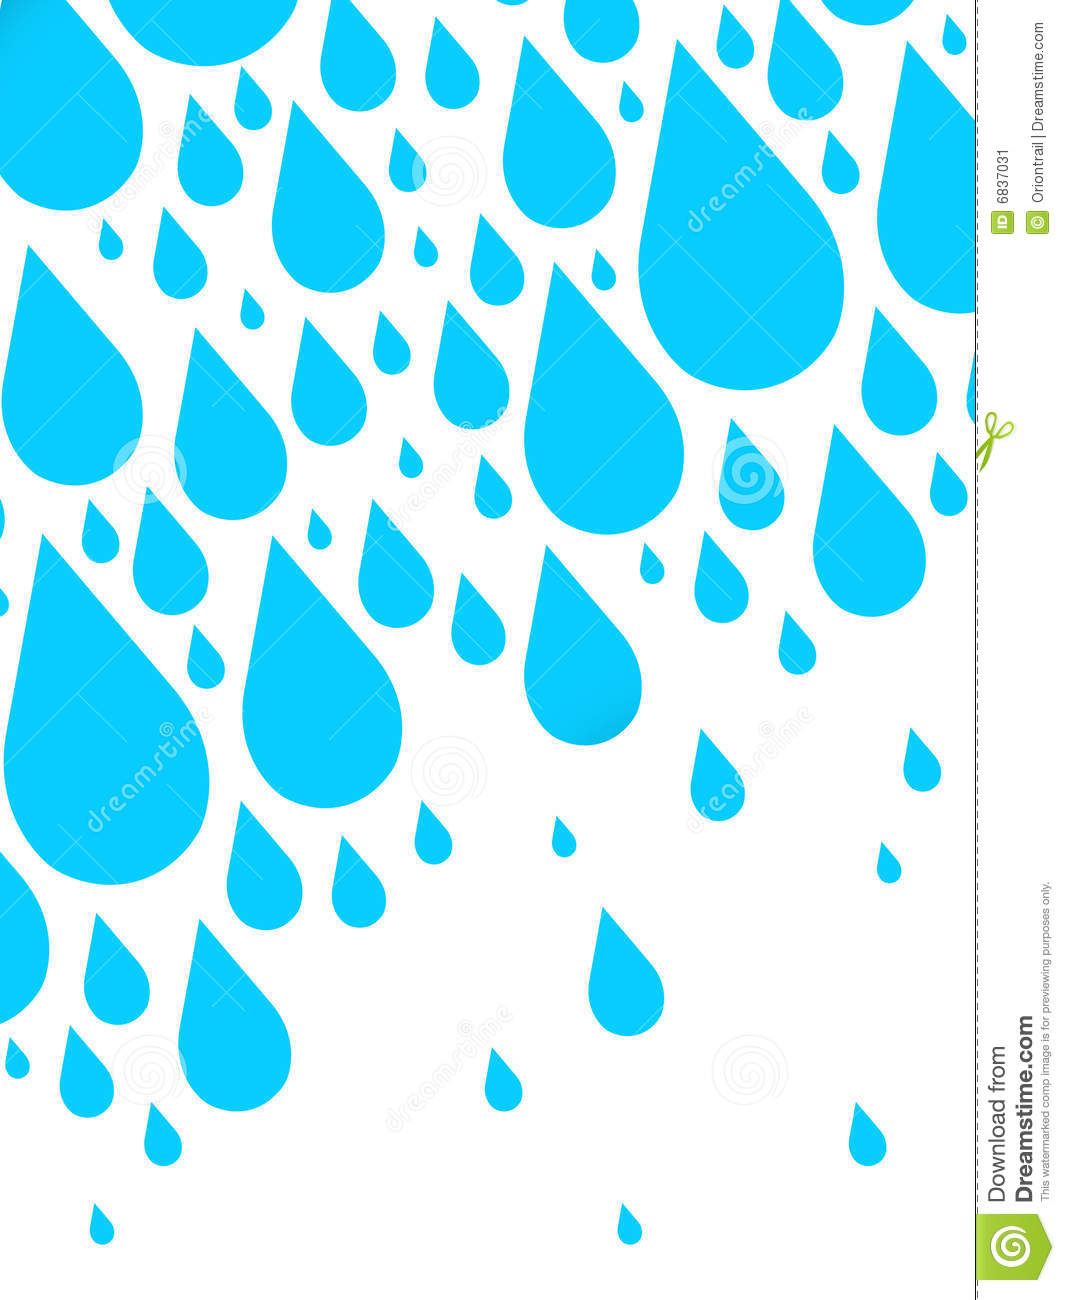 Illustrated Rain Stock Image - Image: 6837031